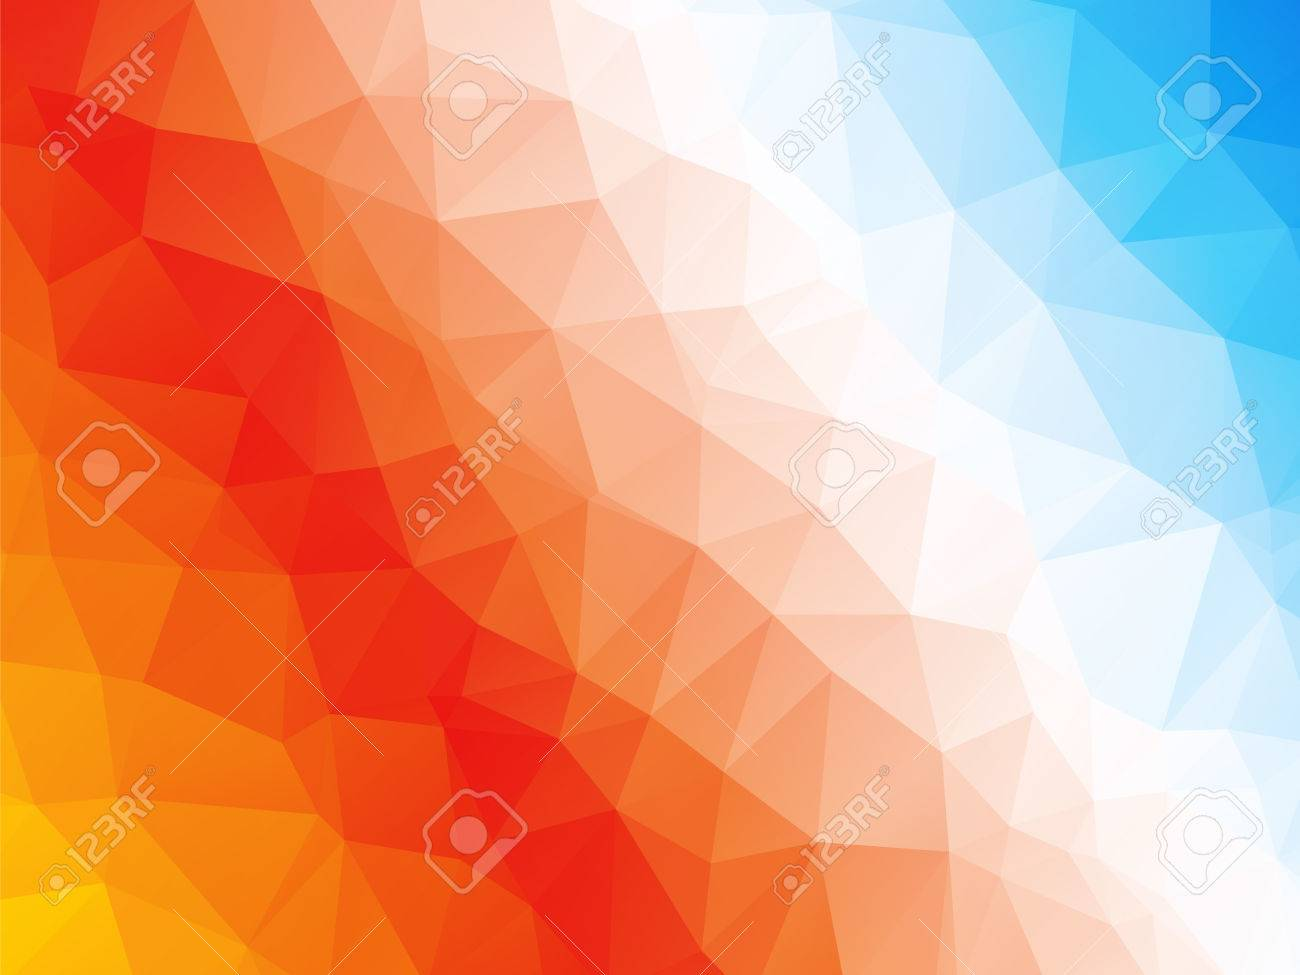 Abstract geometric red orange blue white triangle background royalty abstract geometric red orange blue white triangle background stock vector 47667055 altavistaventures Images